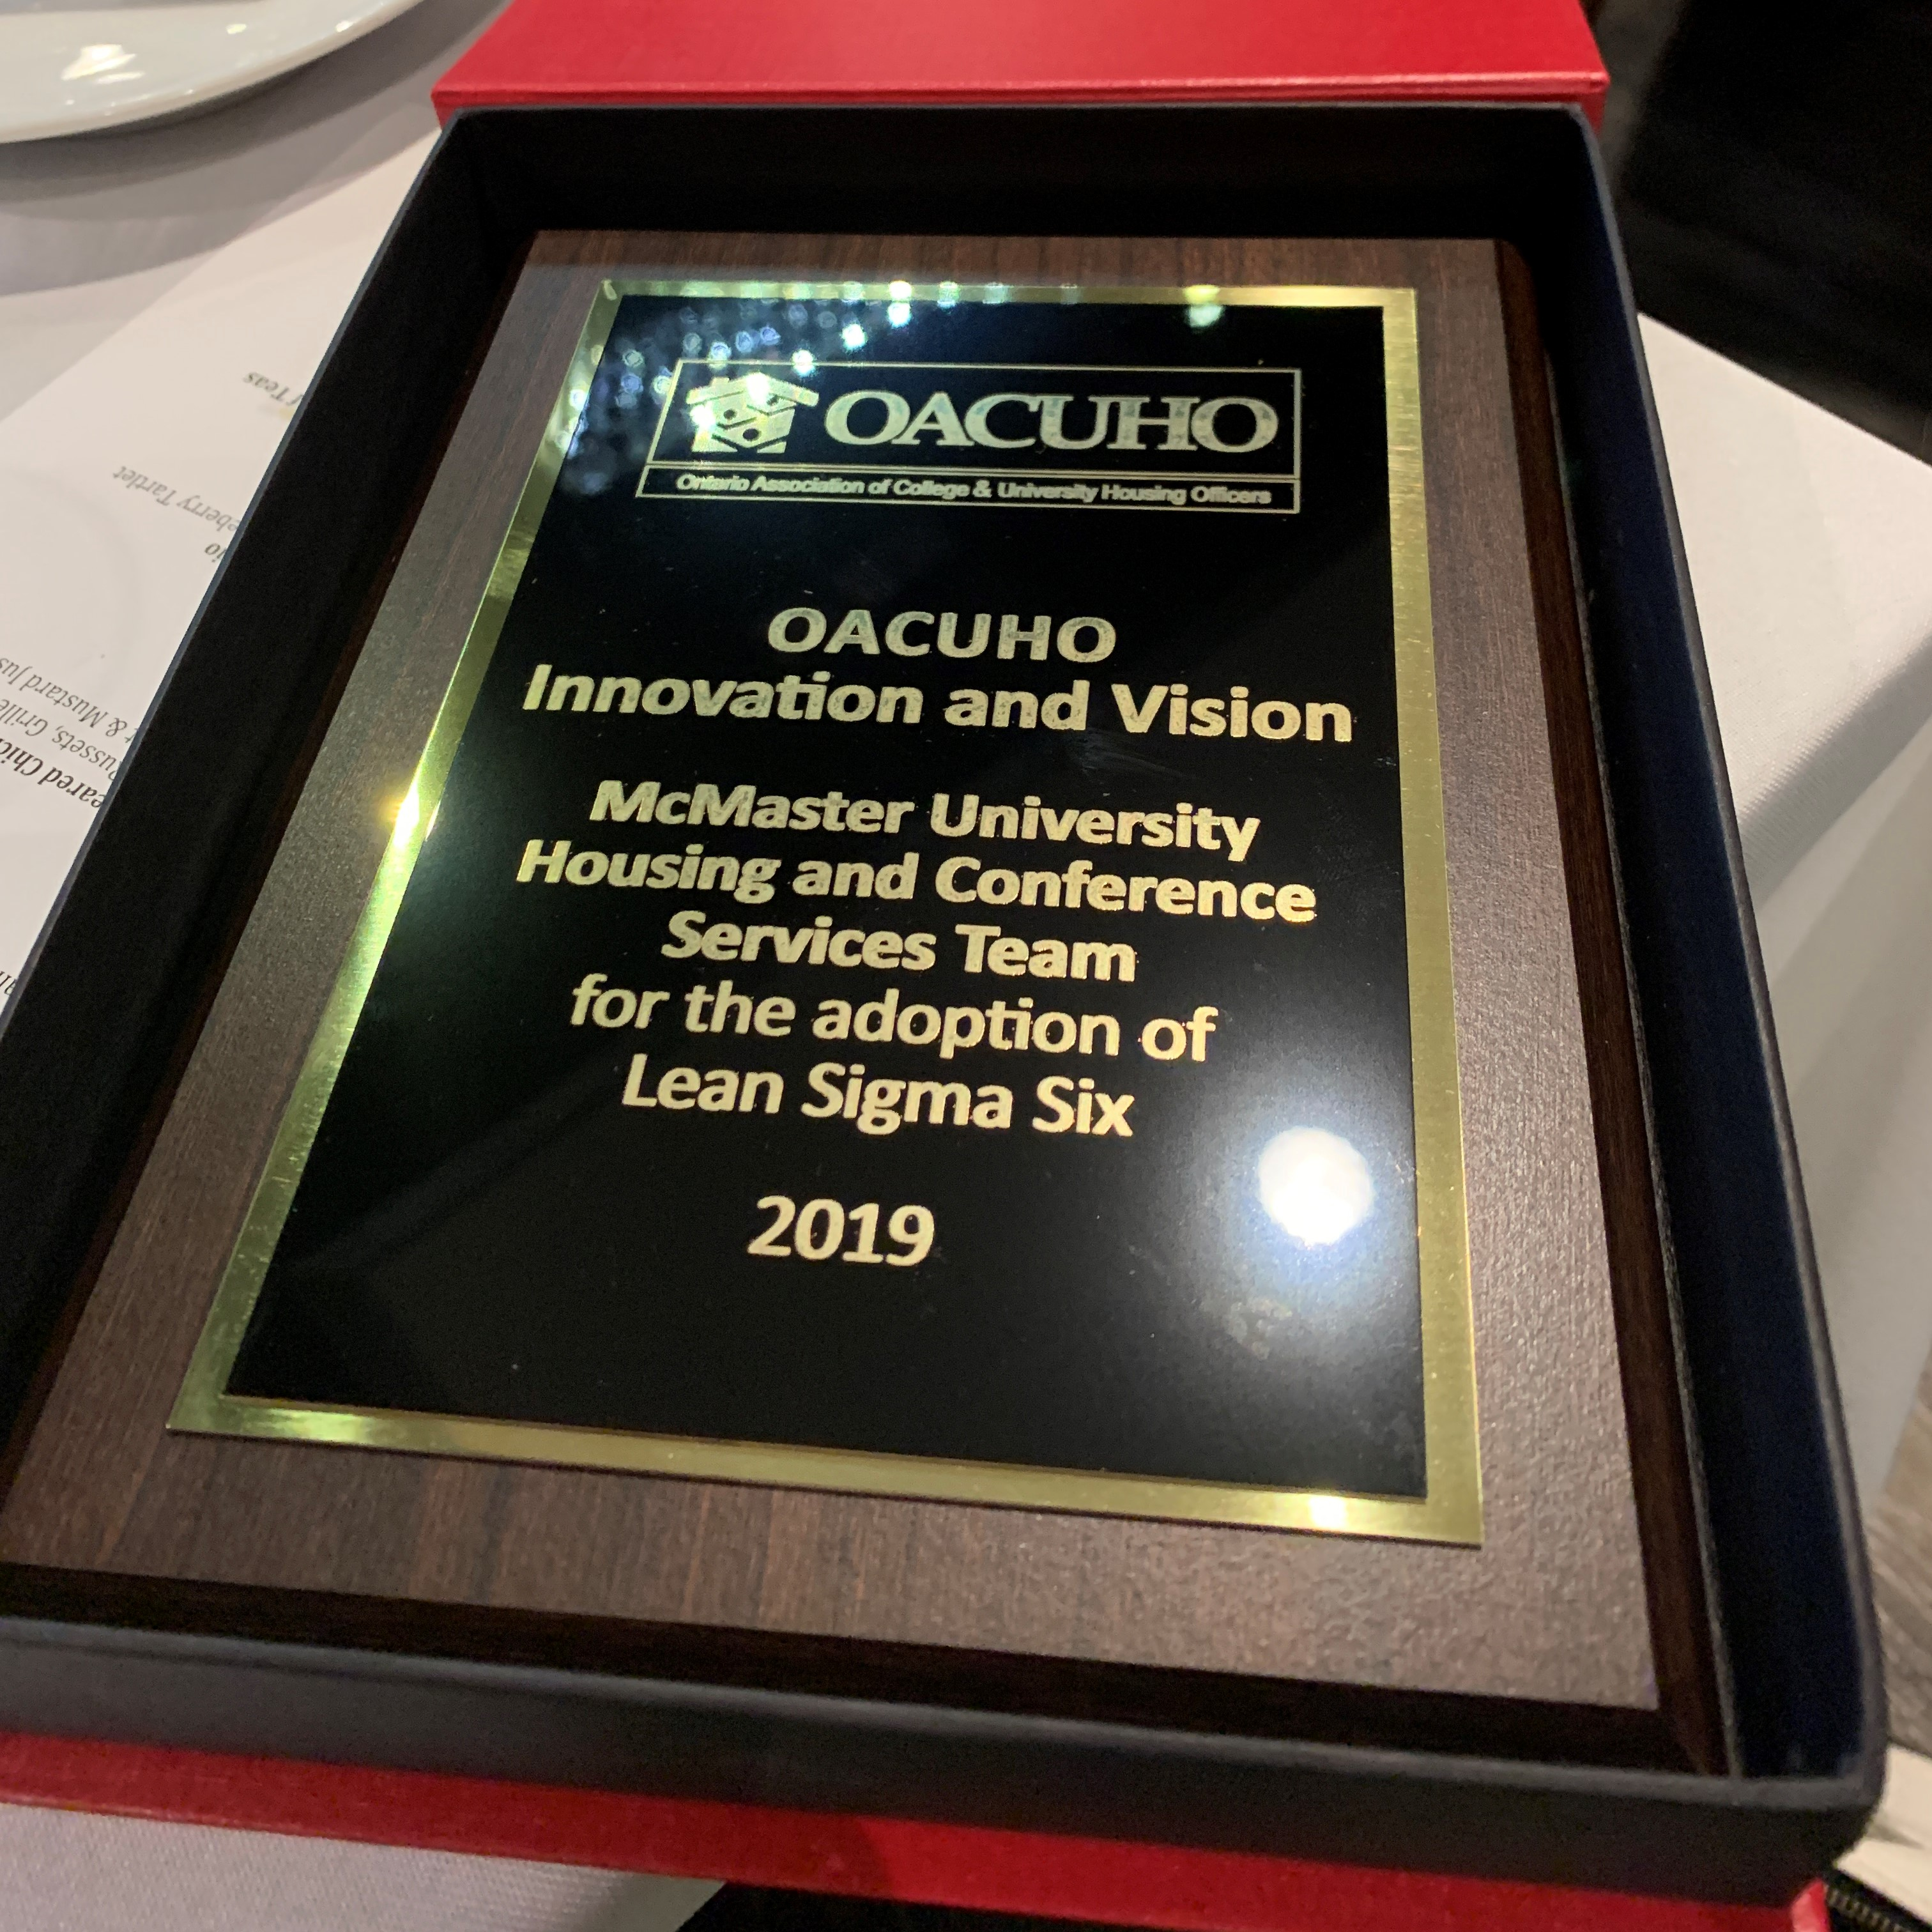 OACUHO Innovation and Vision award